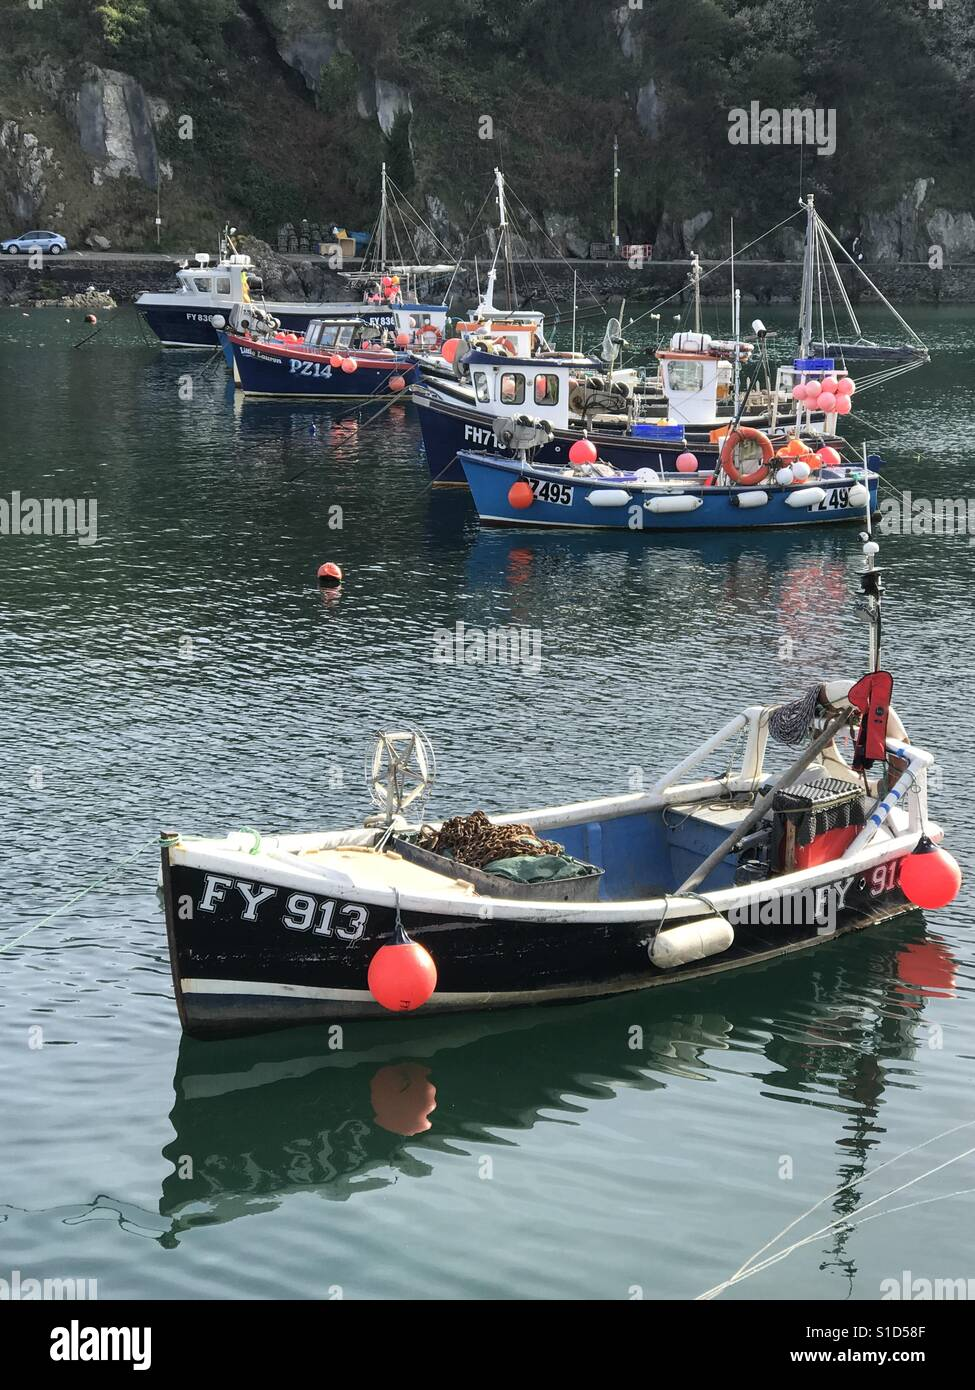 Fishing boats lined up in harbour - Stock Image